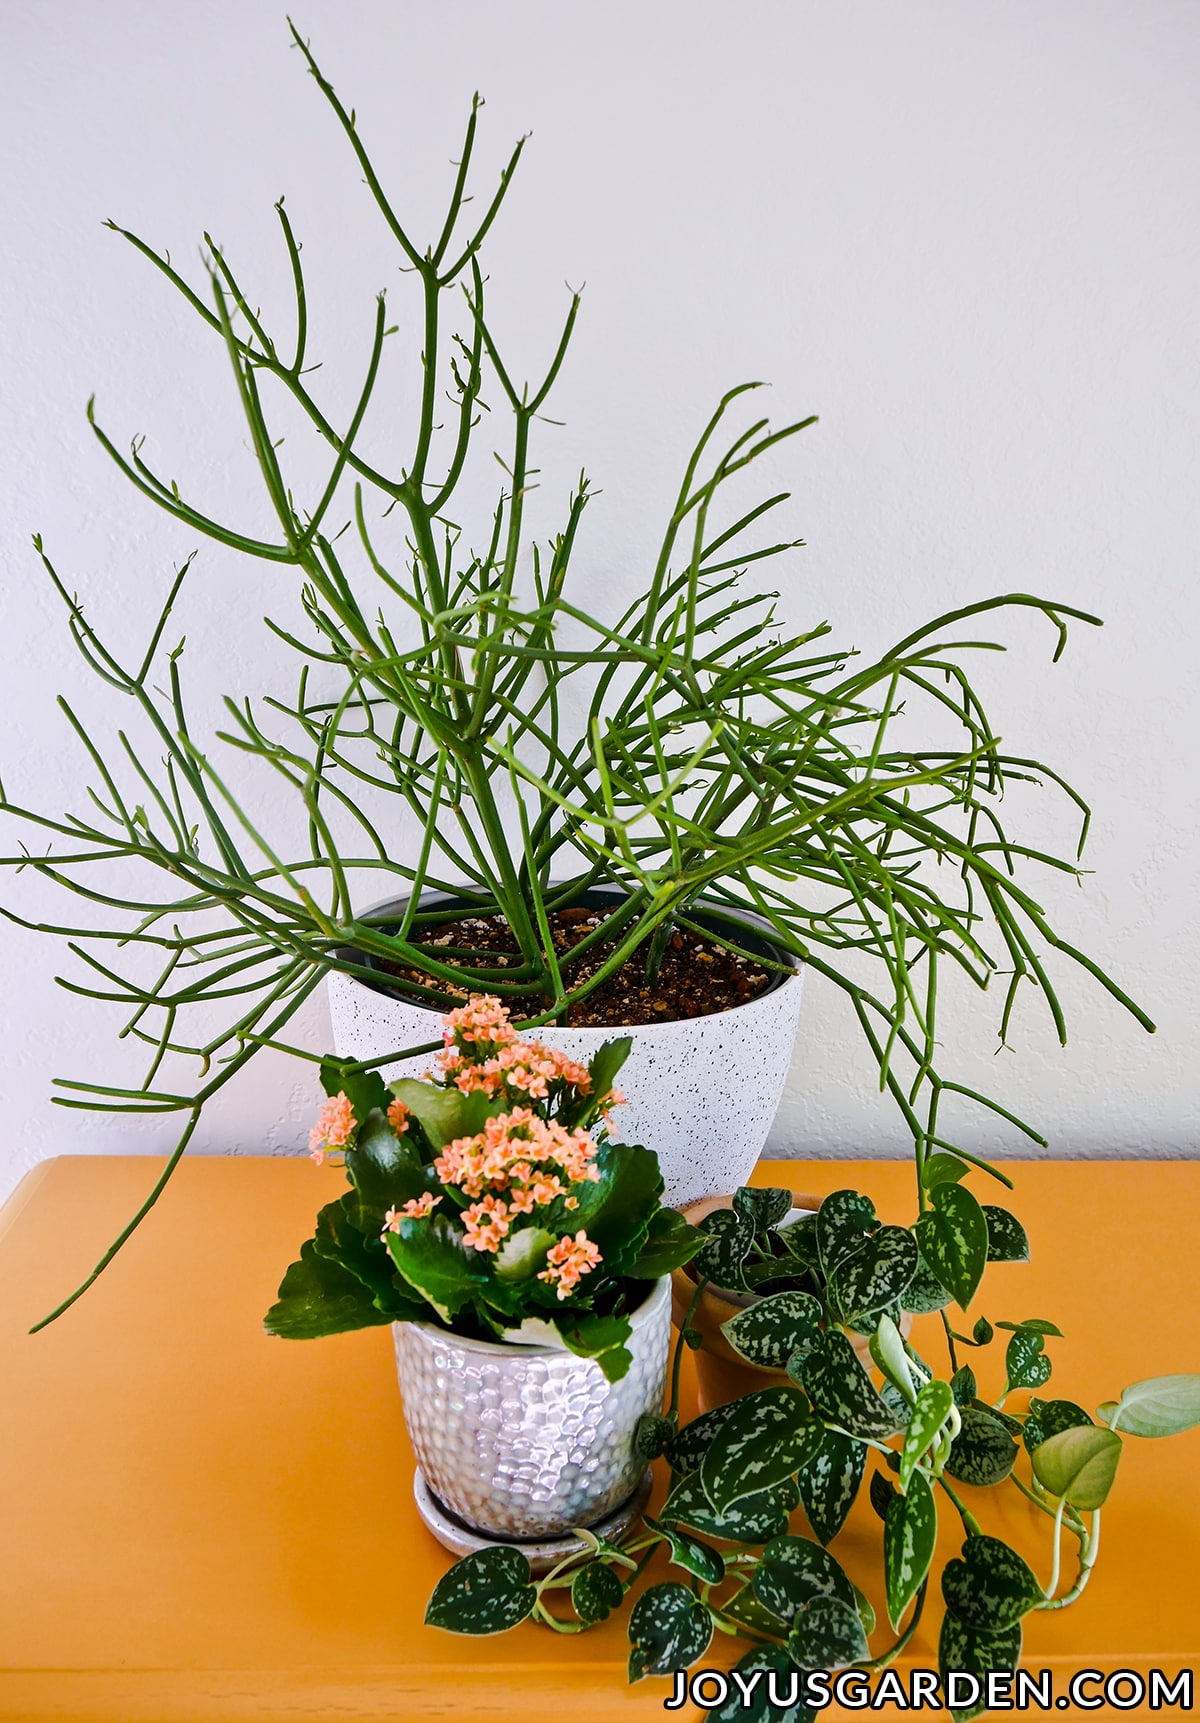 3 indoor plants sit on a yellow table